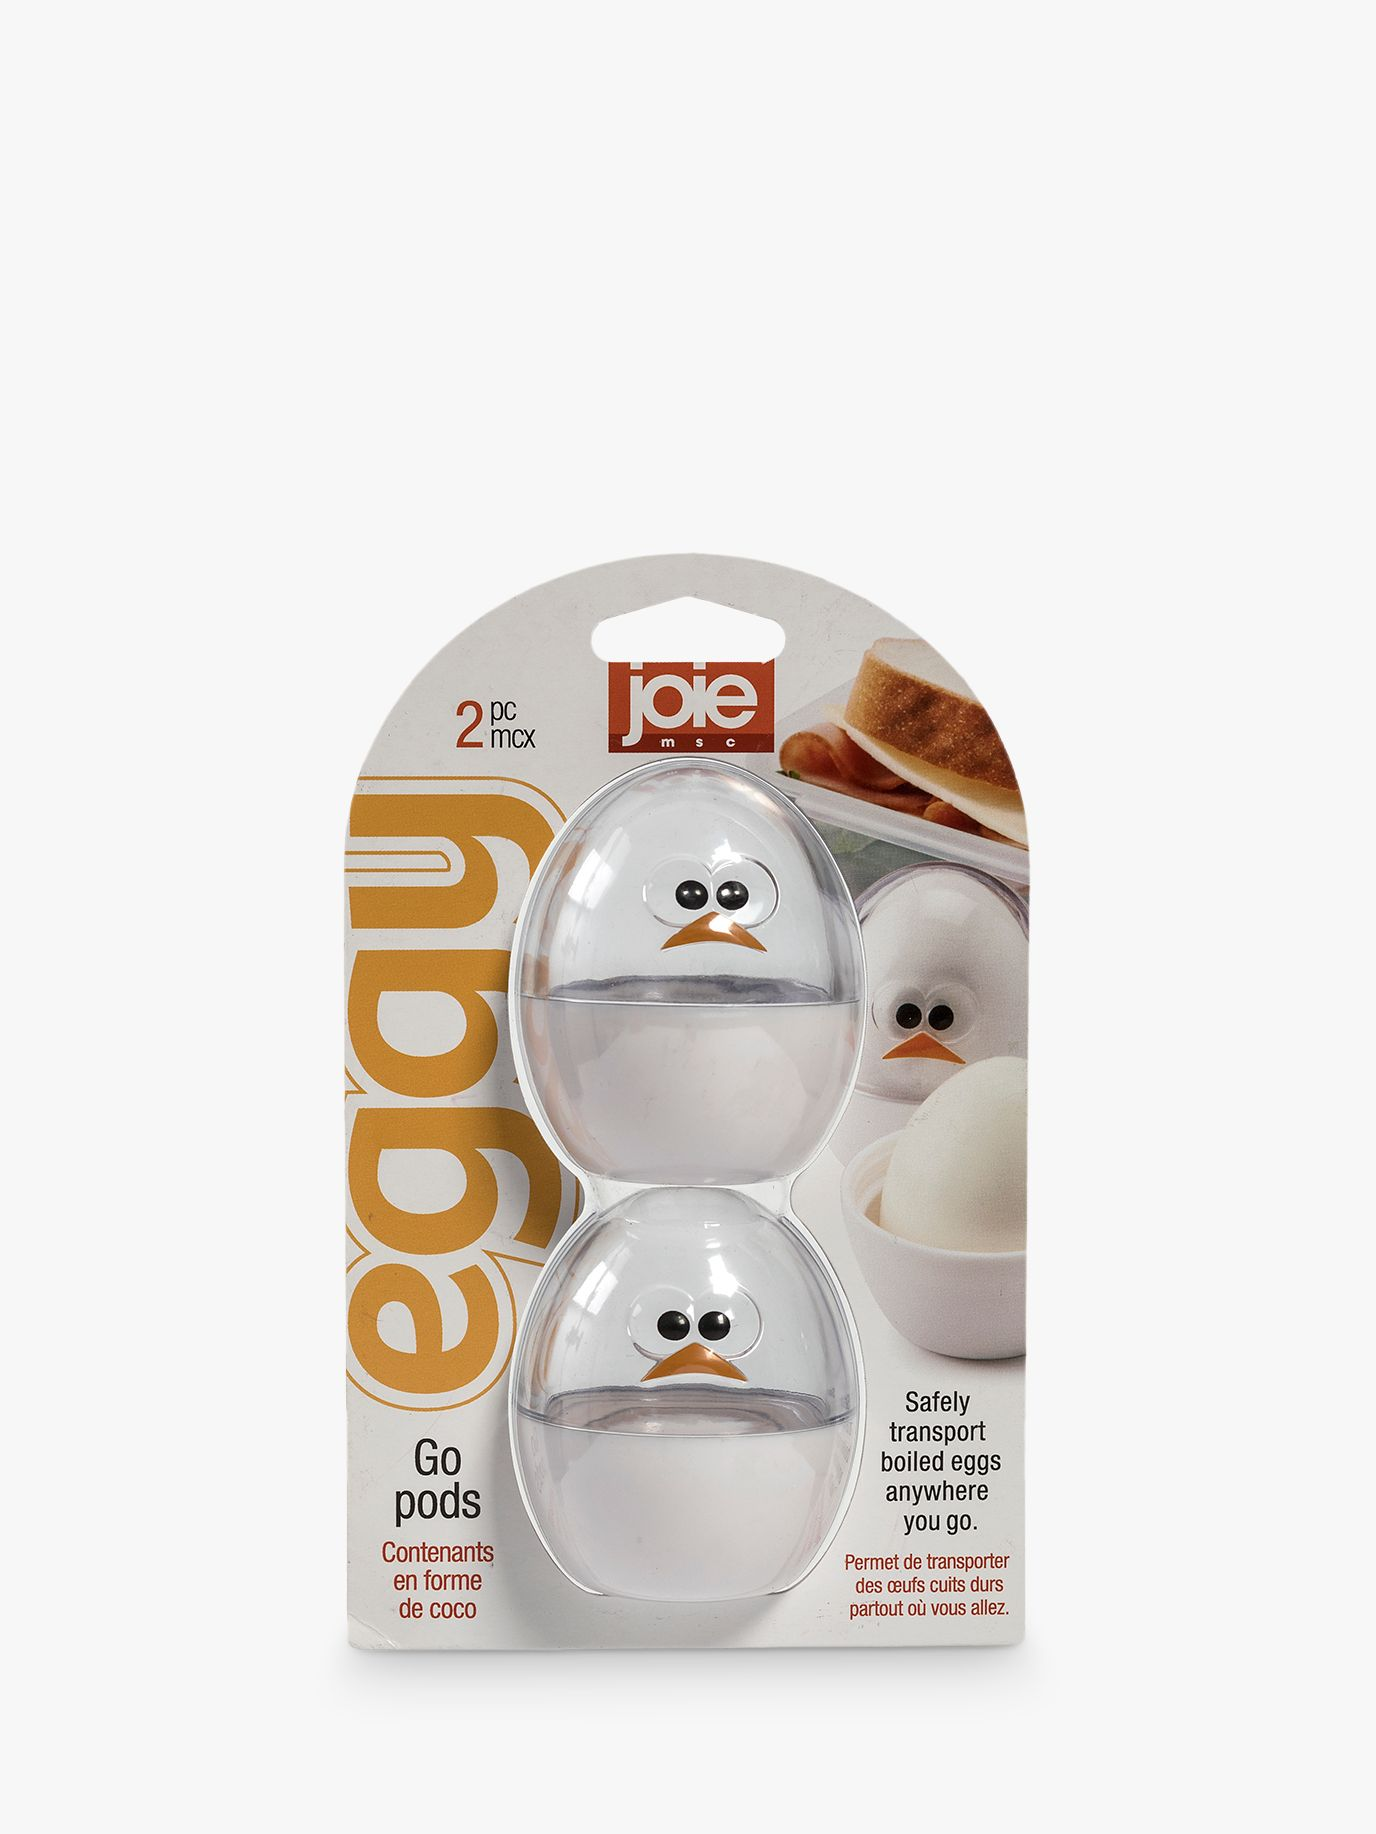 Joie Joie Boiled Egg Go-Pod Food Storage, Set of 2, Clear